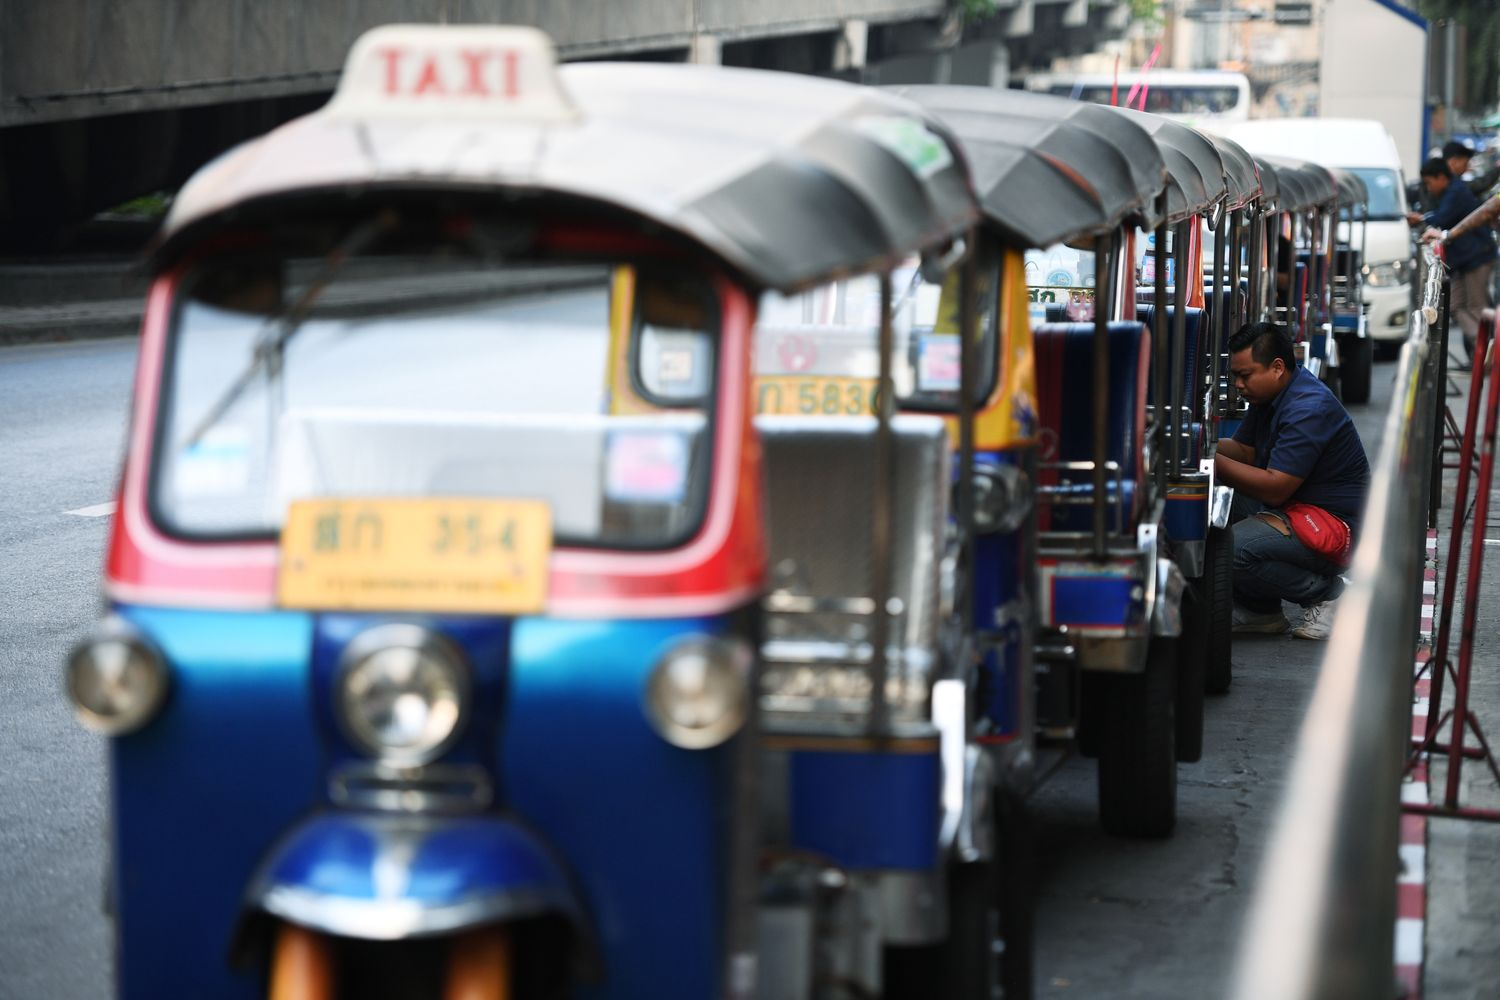 A tuktuk driver waits for his passenger in front of a shopping mall in Bangkok on Monday. (Reuters photo)